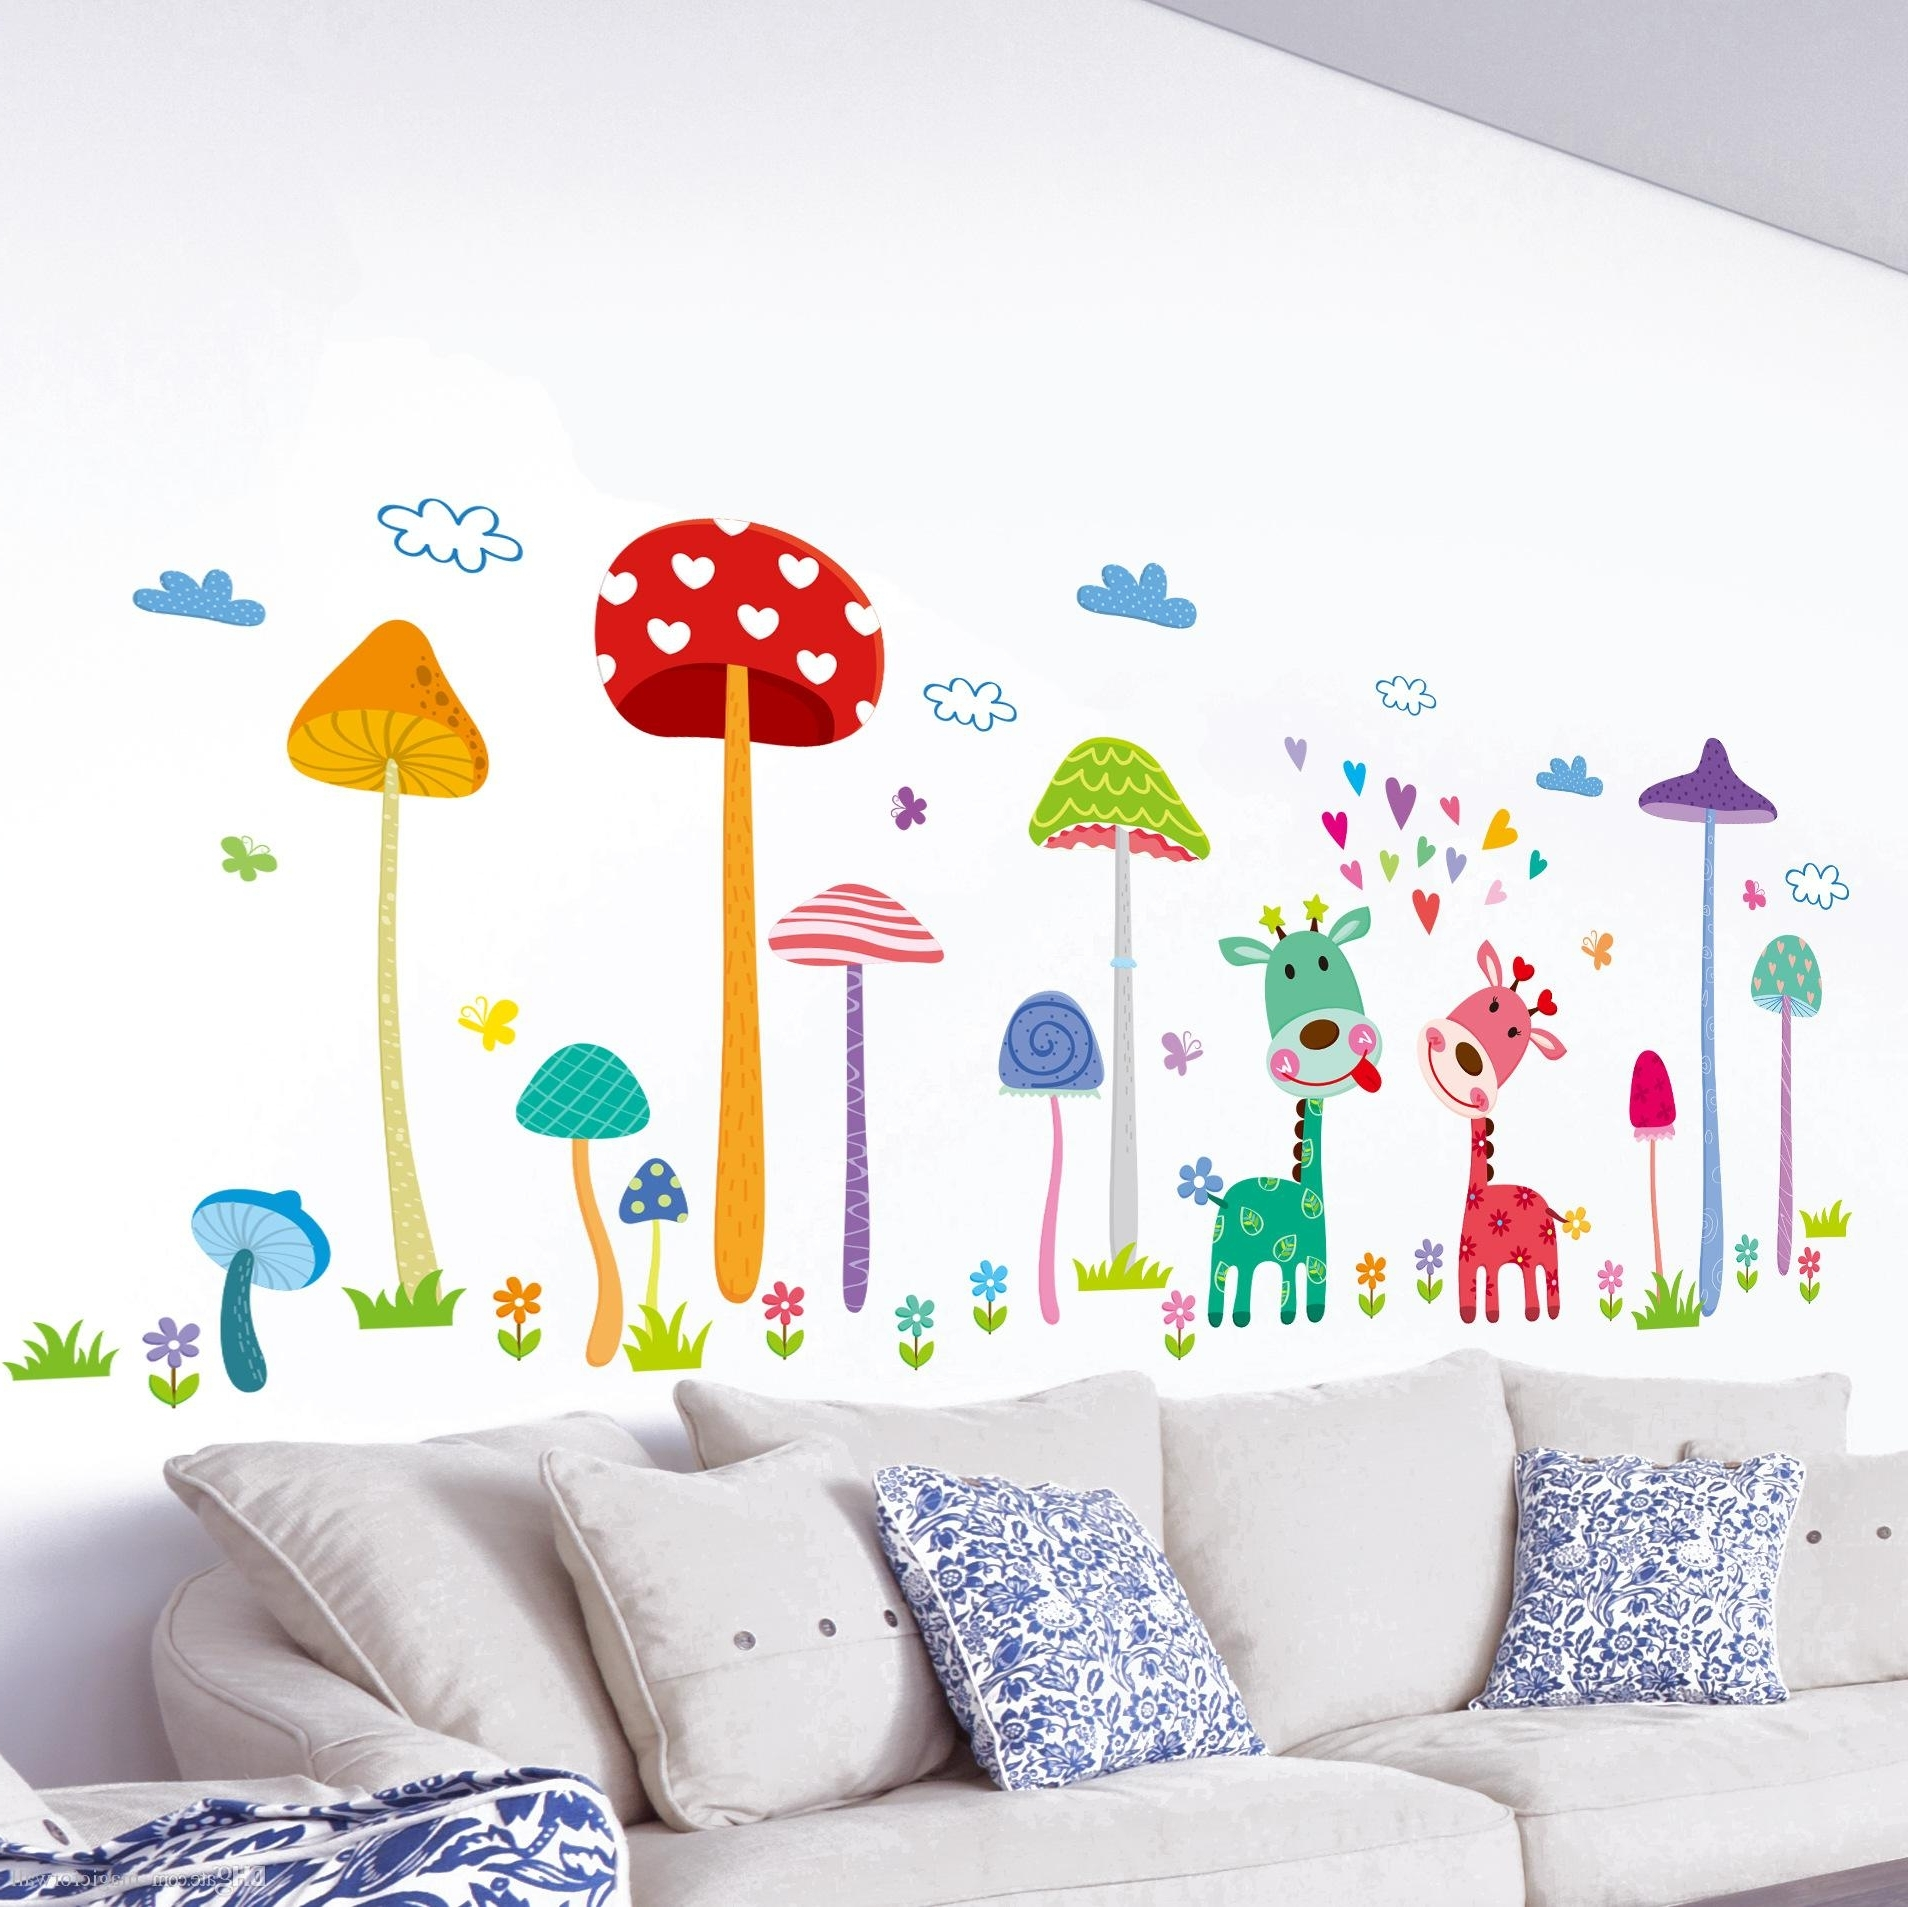 Baby Wall Art With Most Popular Forest Mushroom Deer Animals Home Wall Art Mural Decor Kids Babies (View 4 of 15)